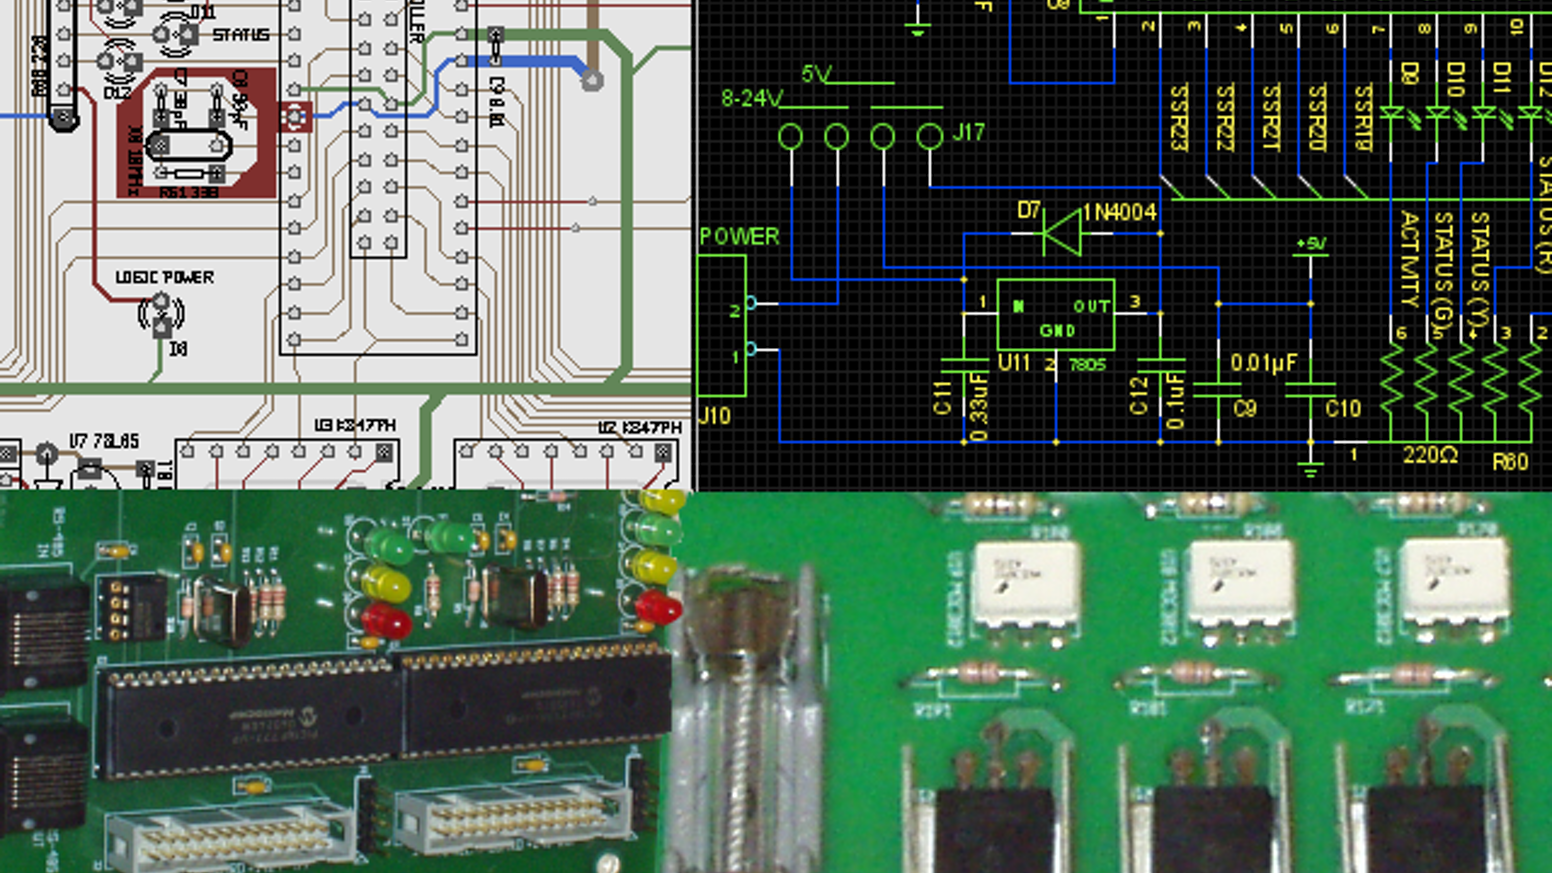 computer controlled relay board for 24 dc loads to control led christmas lights or whatever you can think of